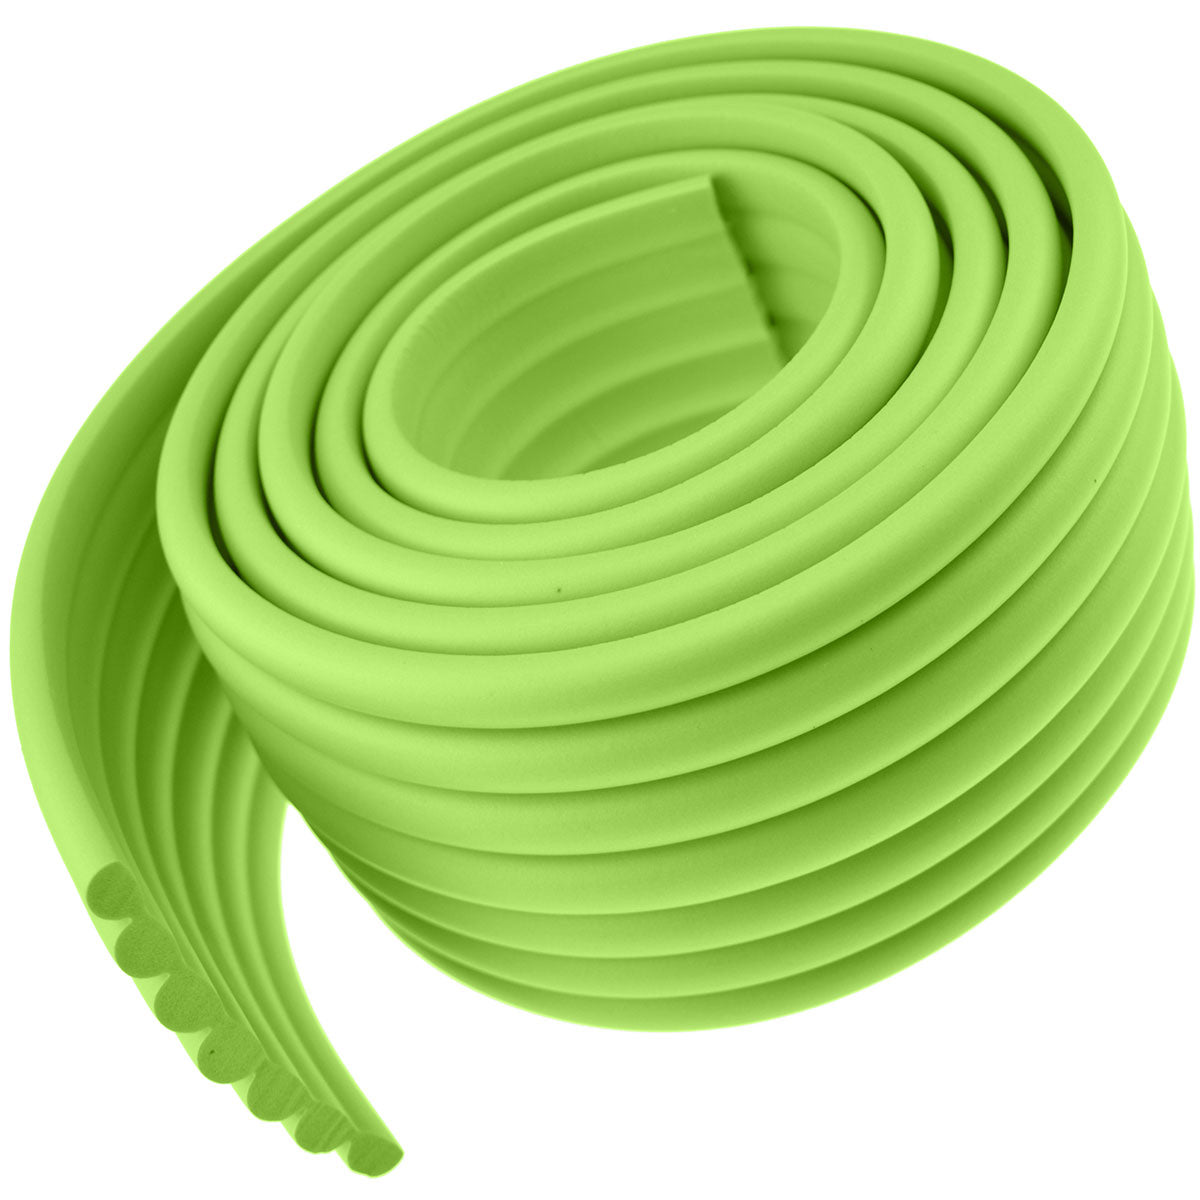 1 Roll Green Multi-Purpose Edge Protectors 78.7 inches (2 meters)